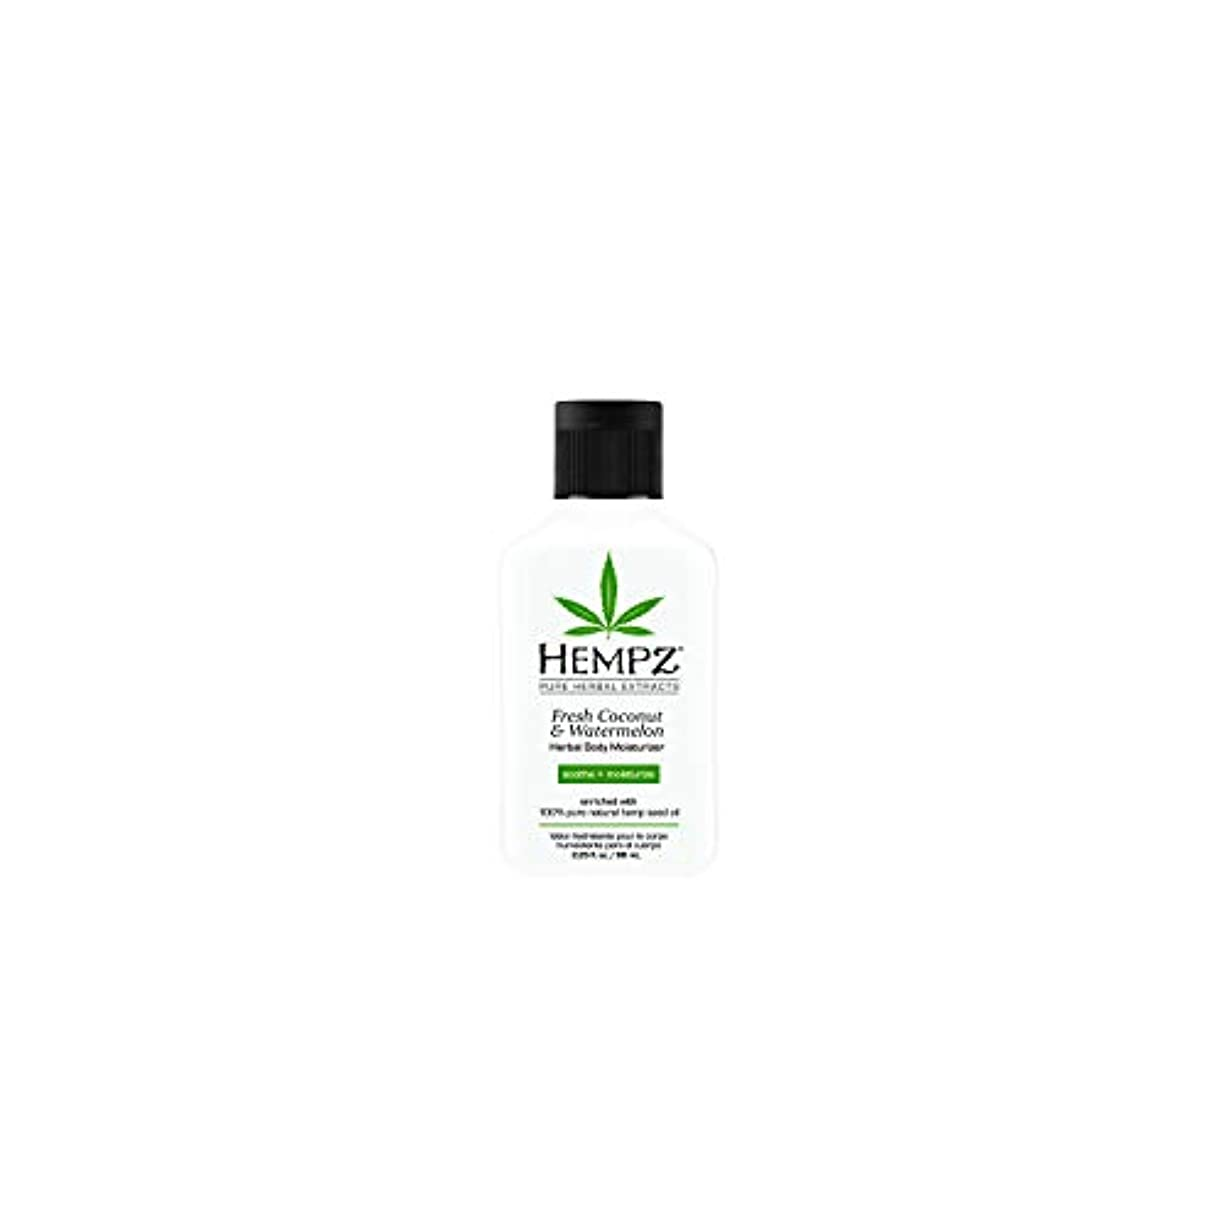 ファシズム超高層ビルオリエンテーションHempz Herbal Body Moisturizer, Pearl White, Fresh Coconut/Watermelon, 2.25 Ounce by Hempz